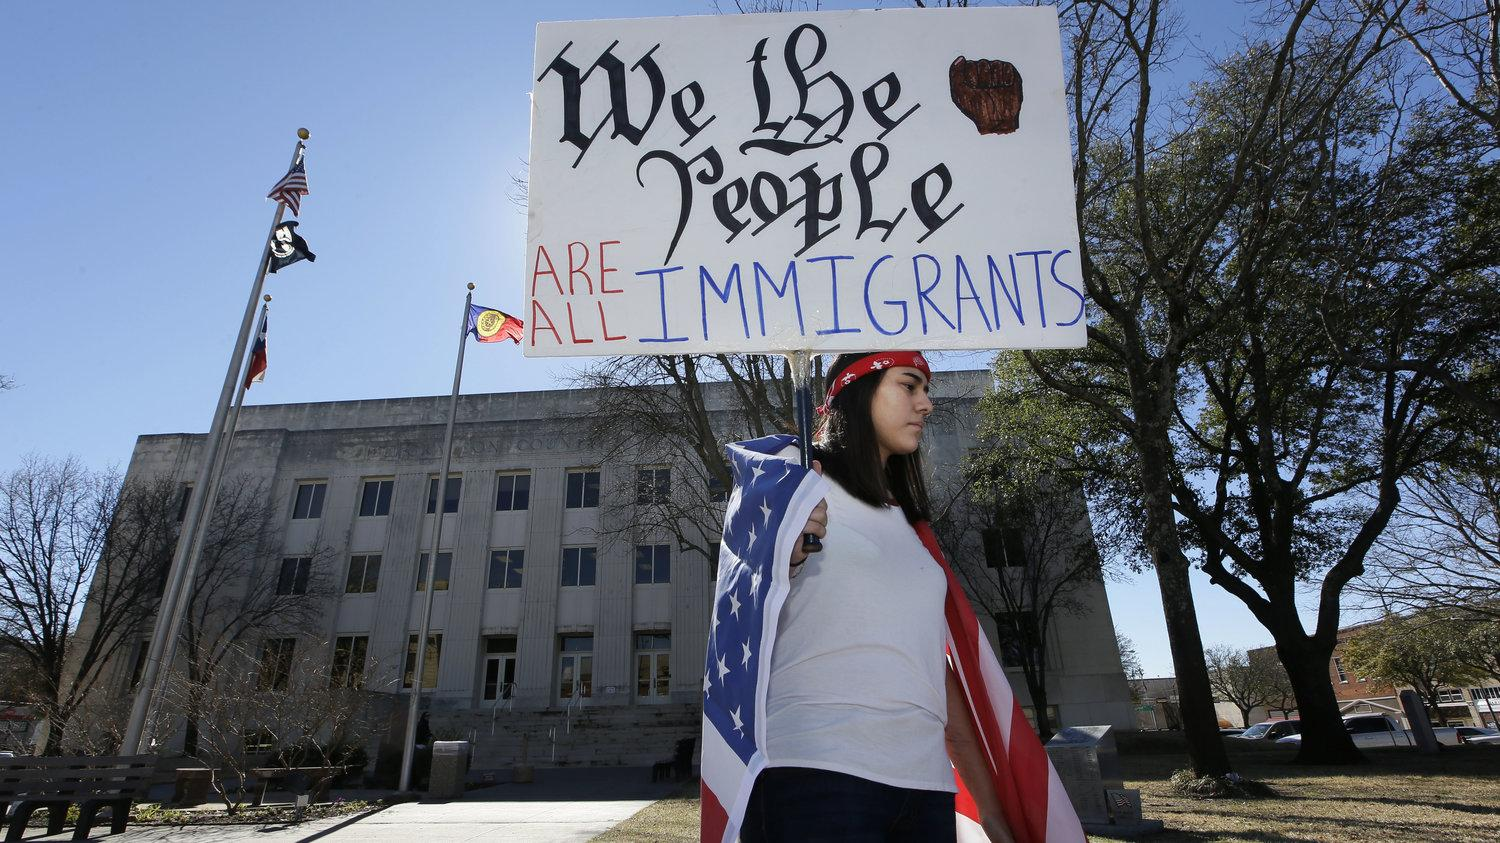 Large crowds gathered to protest during the Day Without Immigrants